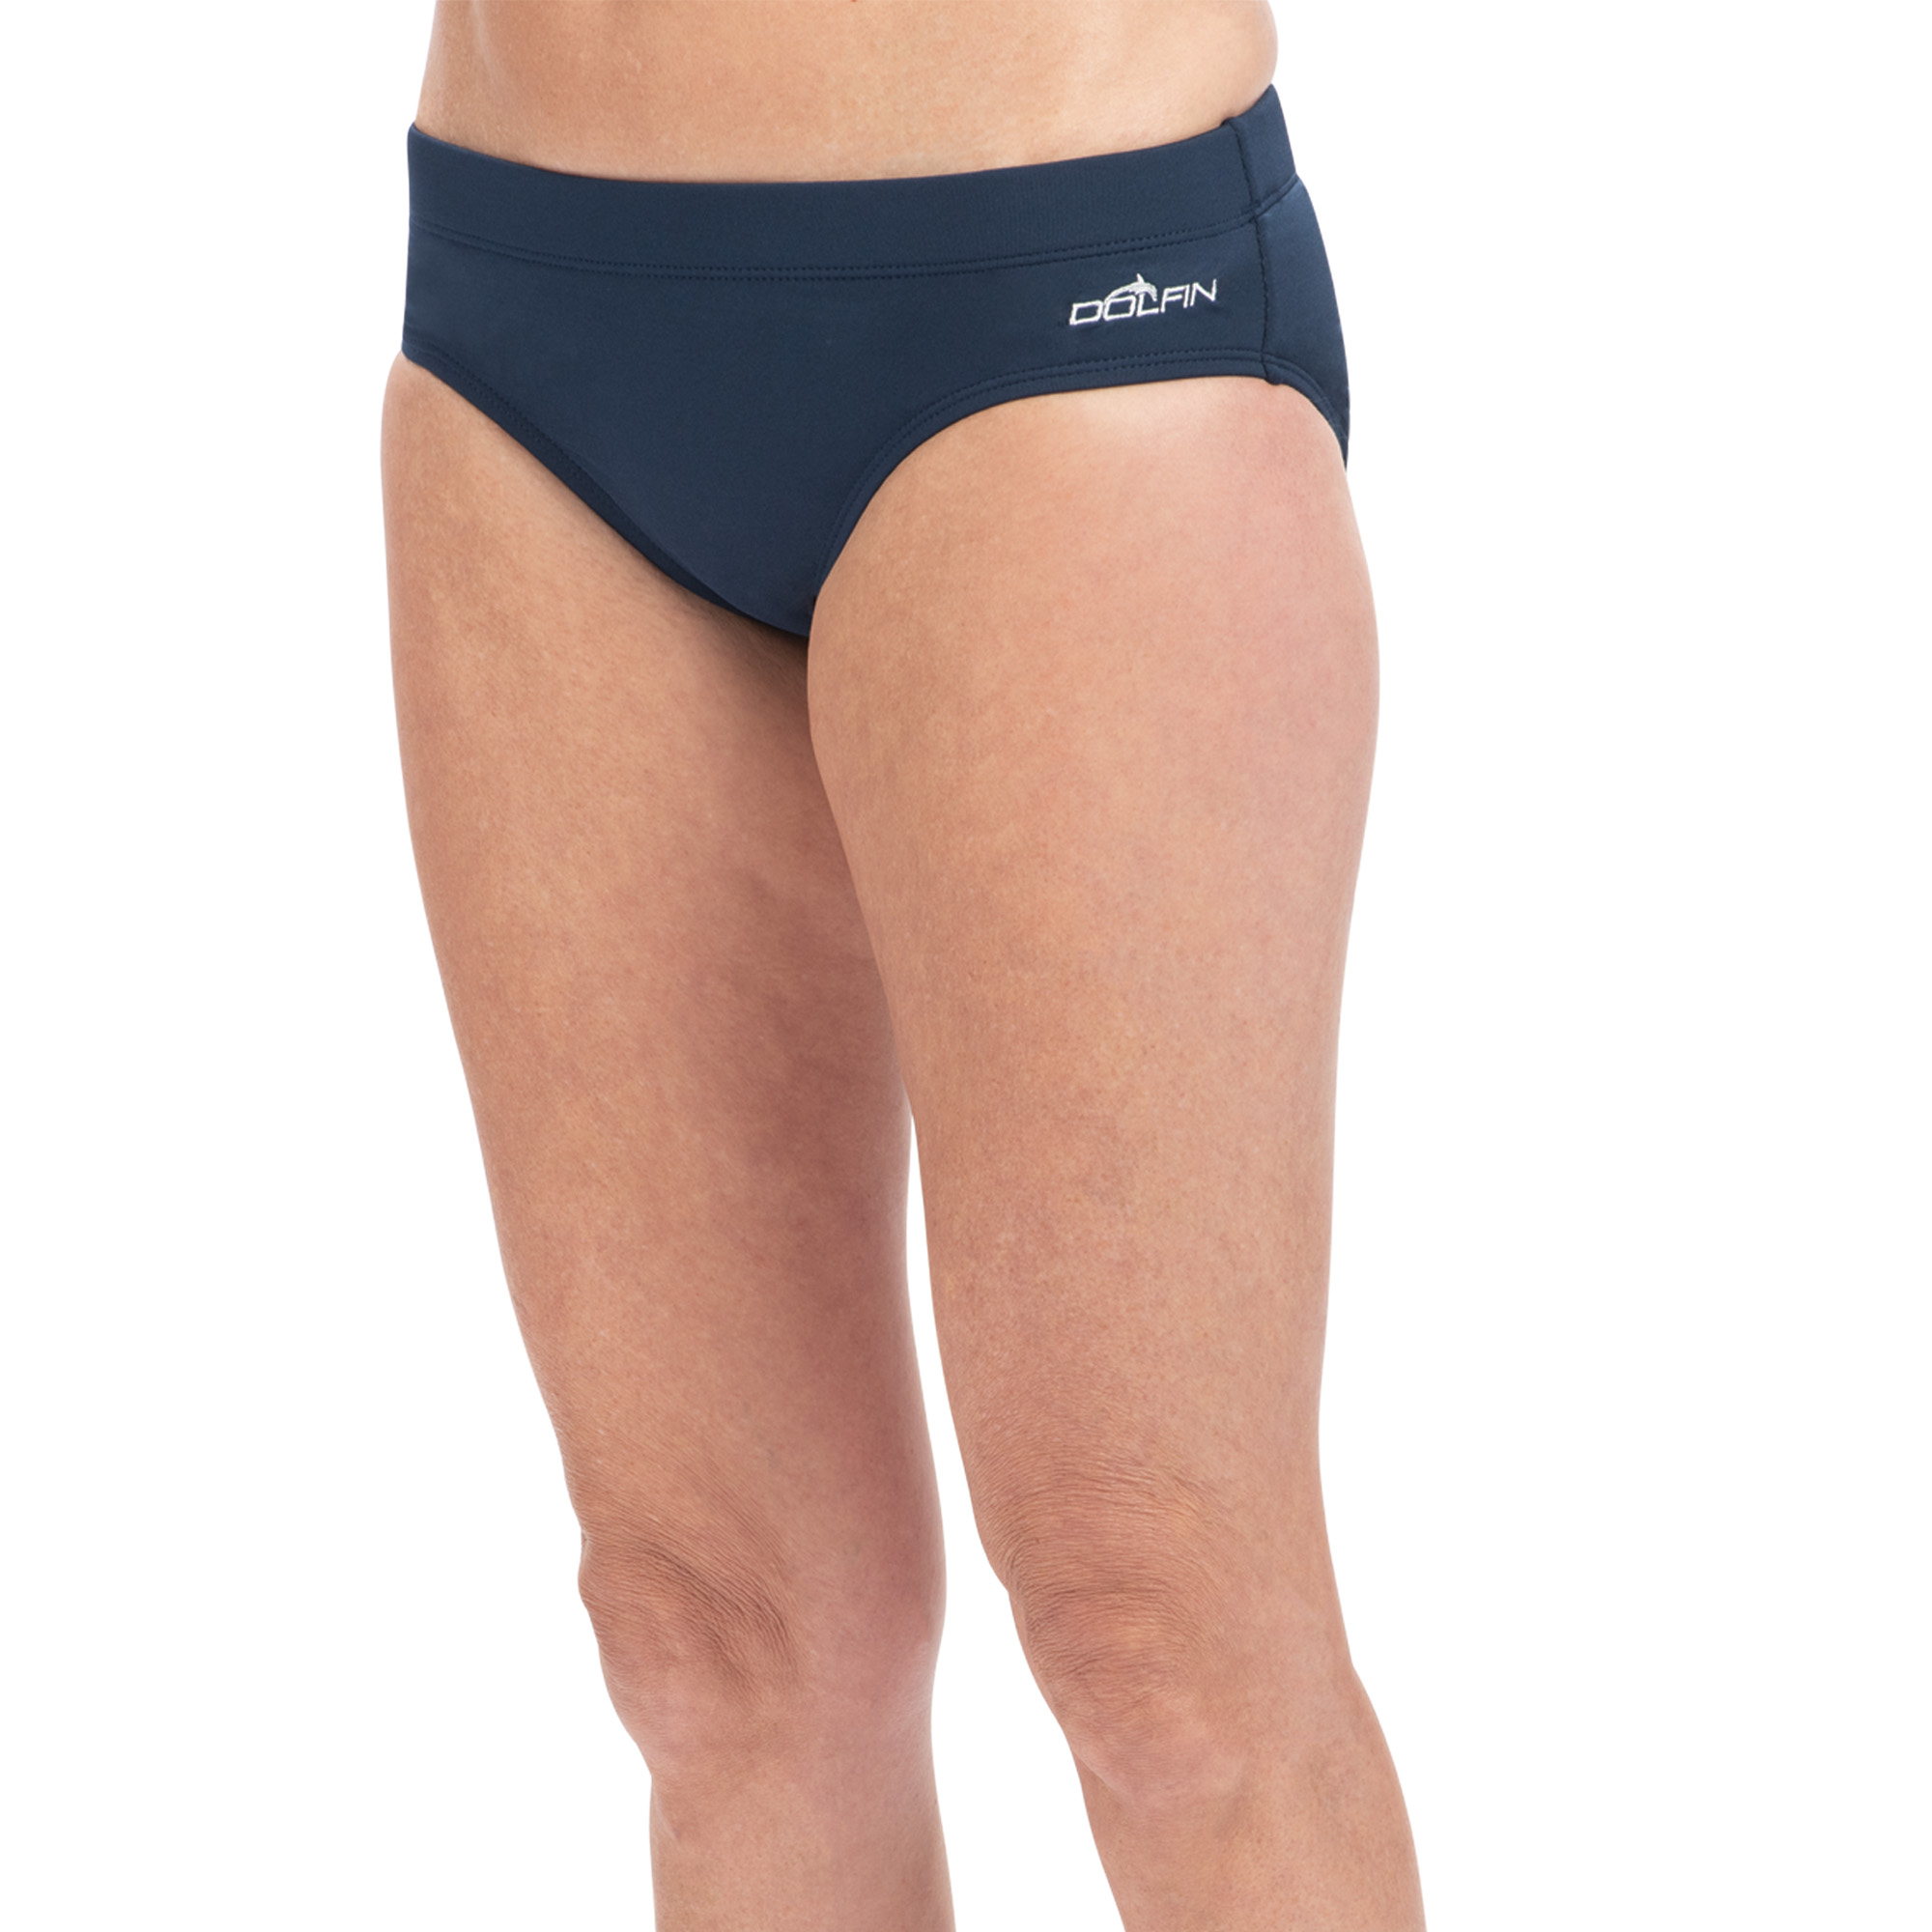 Aquashape Contemporary Cut Brief Swimsuit Bottom in Navy